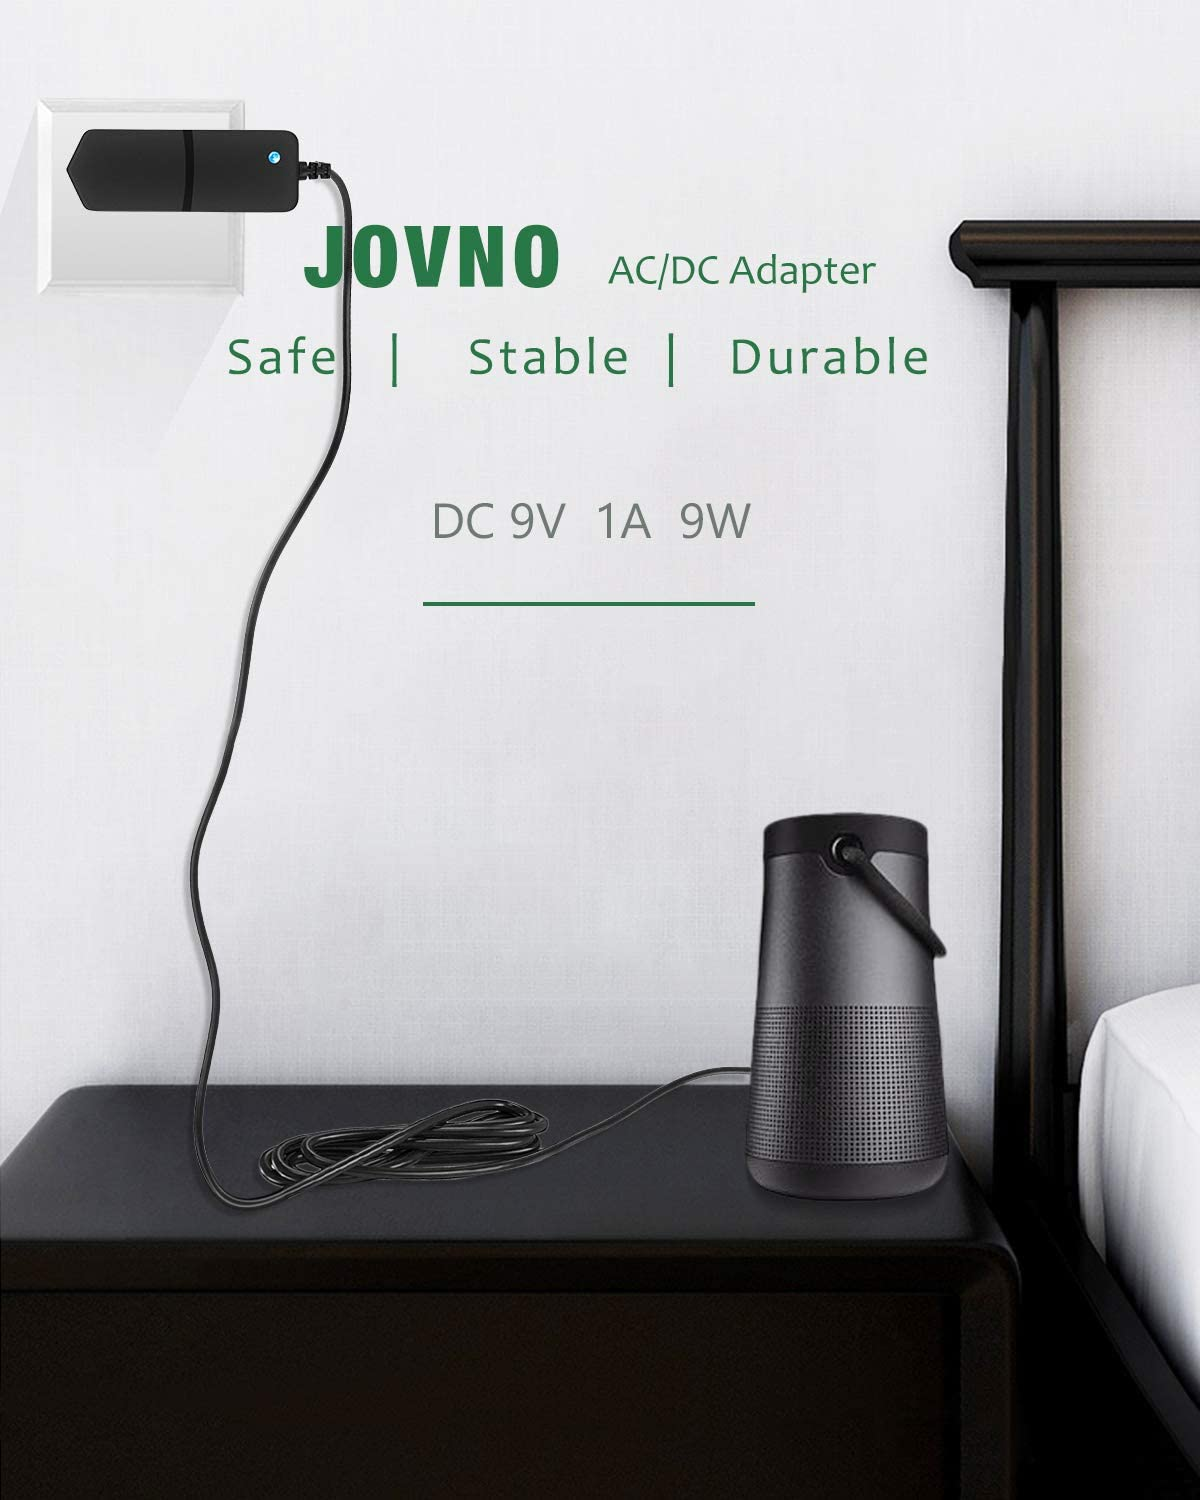 JOVNO 9V 1A Power Supply Adapter 100-240V AC/DC 9V 800mA 500mA 9W Max Power Converter with 5.5x2.5mm Tip for NES, Arduino, Breast Pump, Speaks, Routers, Home Camera, Security System, Center Positive